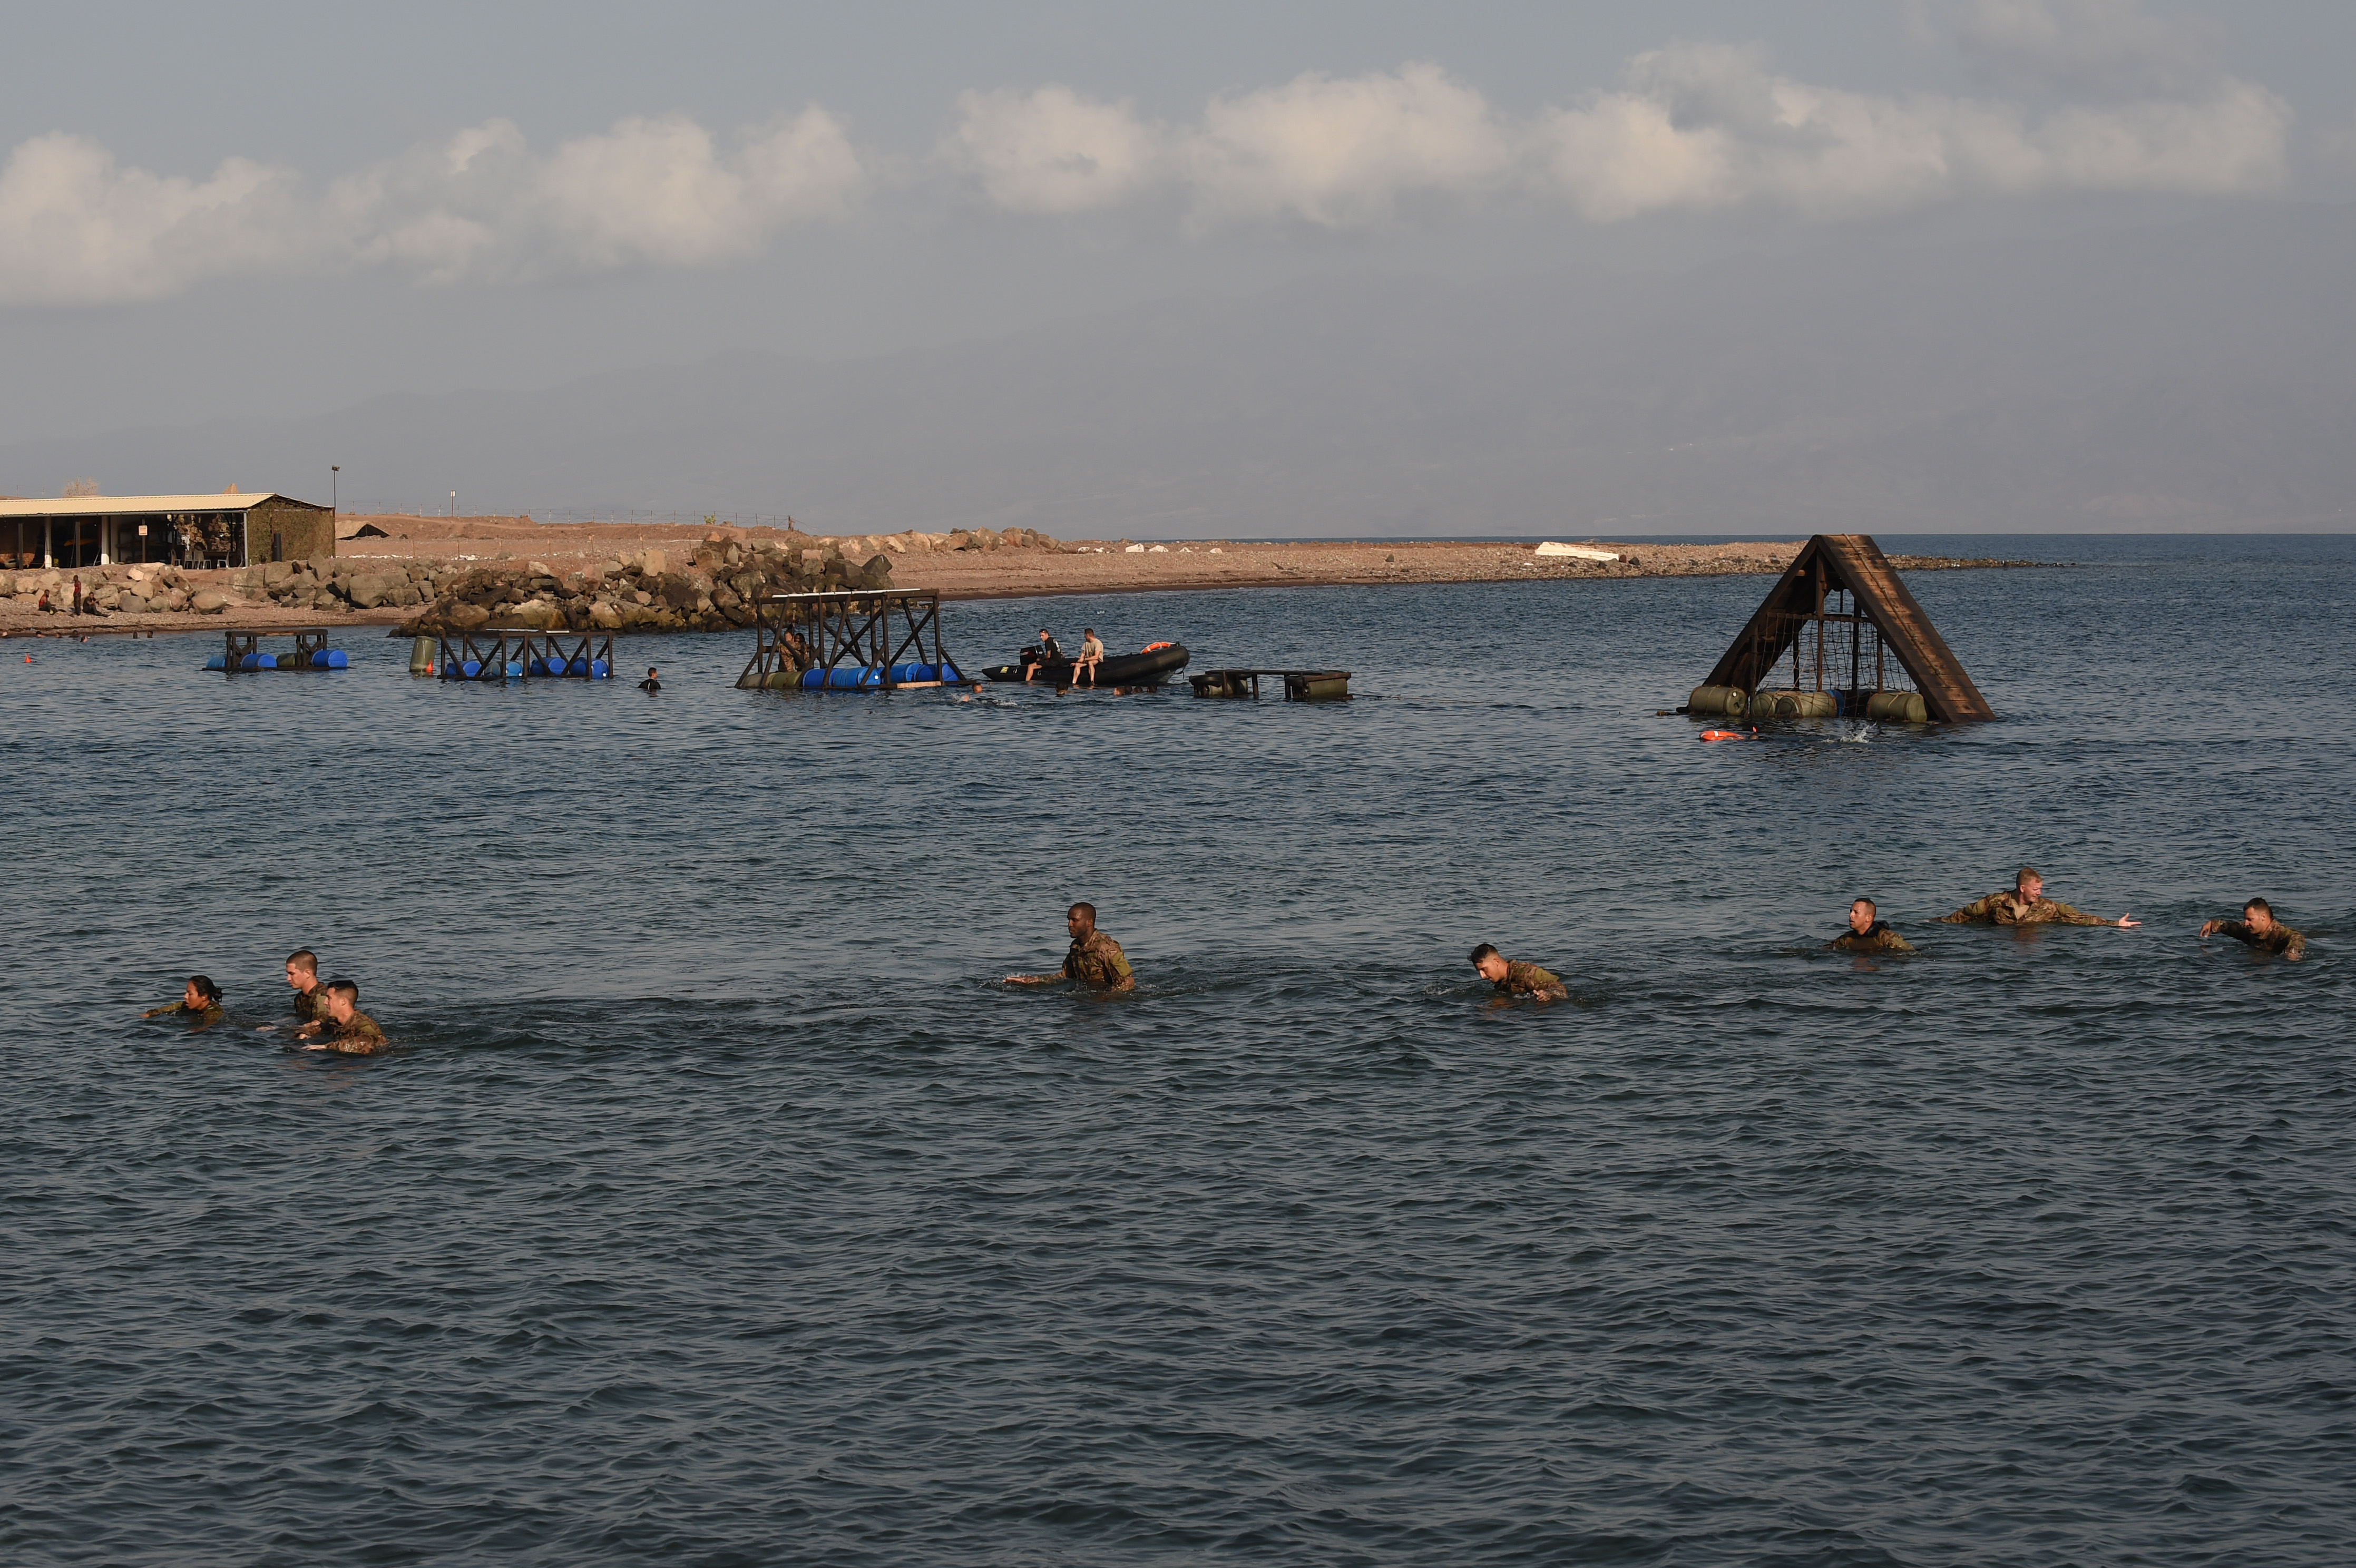 ARTA PLAGE, Djibouti – U.S. Army Soldiers from the 1st Battalion, 124th Infantry Regiment, assigned to Combined Joint Task Force-Horn of Africa, complete a water obstacle course as part of the French Marines Desert Survival Course, Oct. 10, 2016, at Arta Plage, Djibouti. Approximately 46 U.S. Army Soldiers with French Marines completed several tasks during the survival course, including desert operations, combat lifesaving skills, weapons training, survival cooking, how to decontaminate water, and water and mountain obstacle courses. (U.S. Air Force photo by Staff Sgt. Tiffany DeNault)